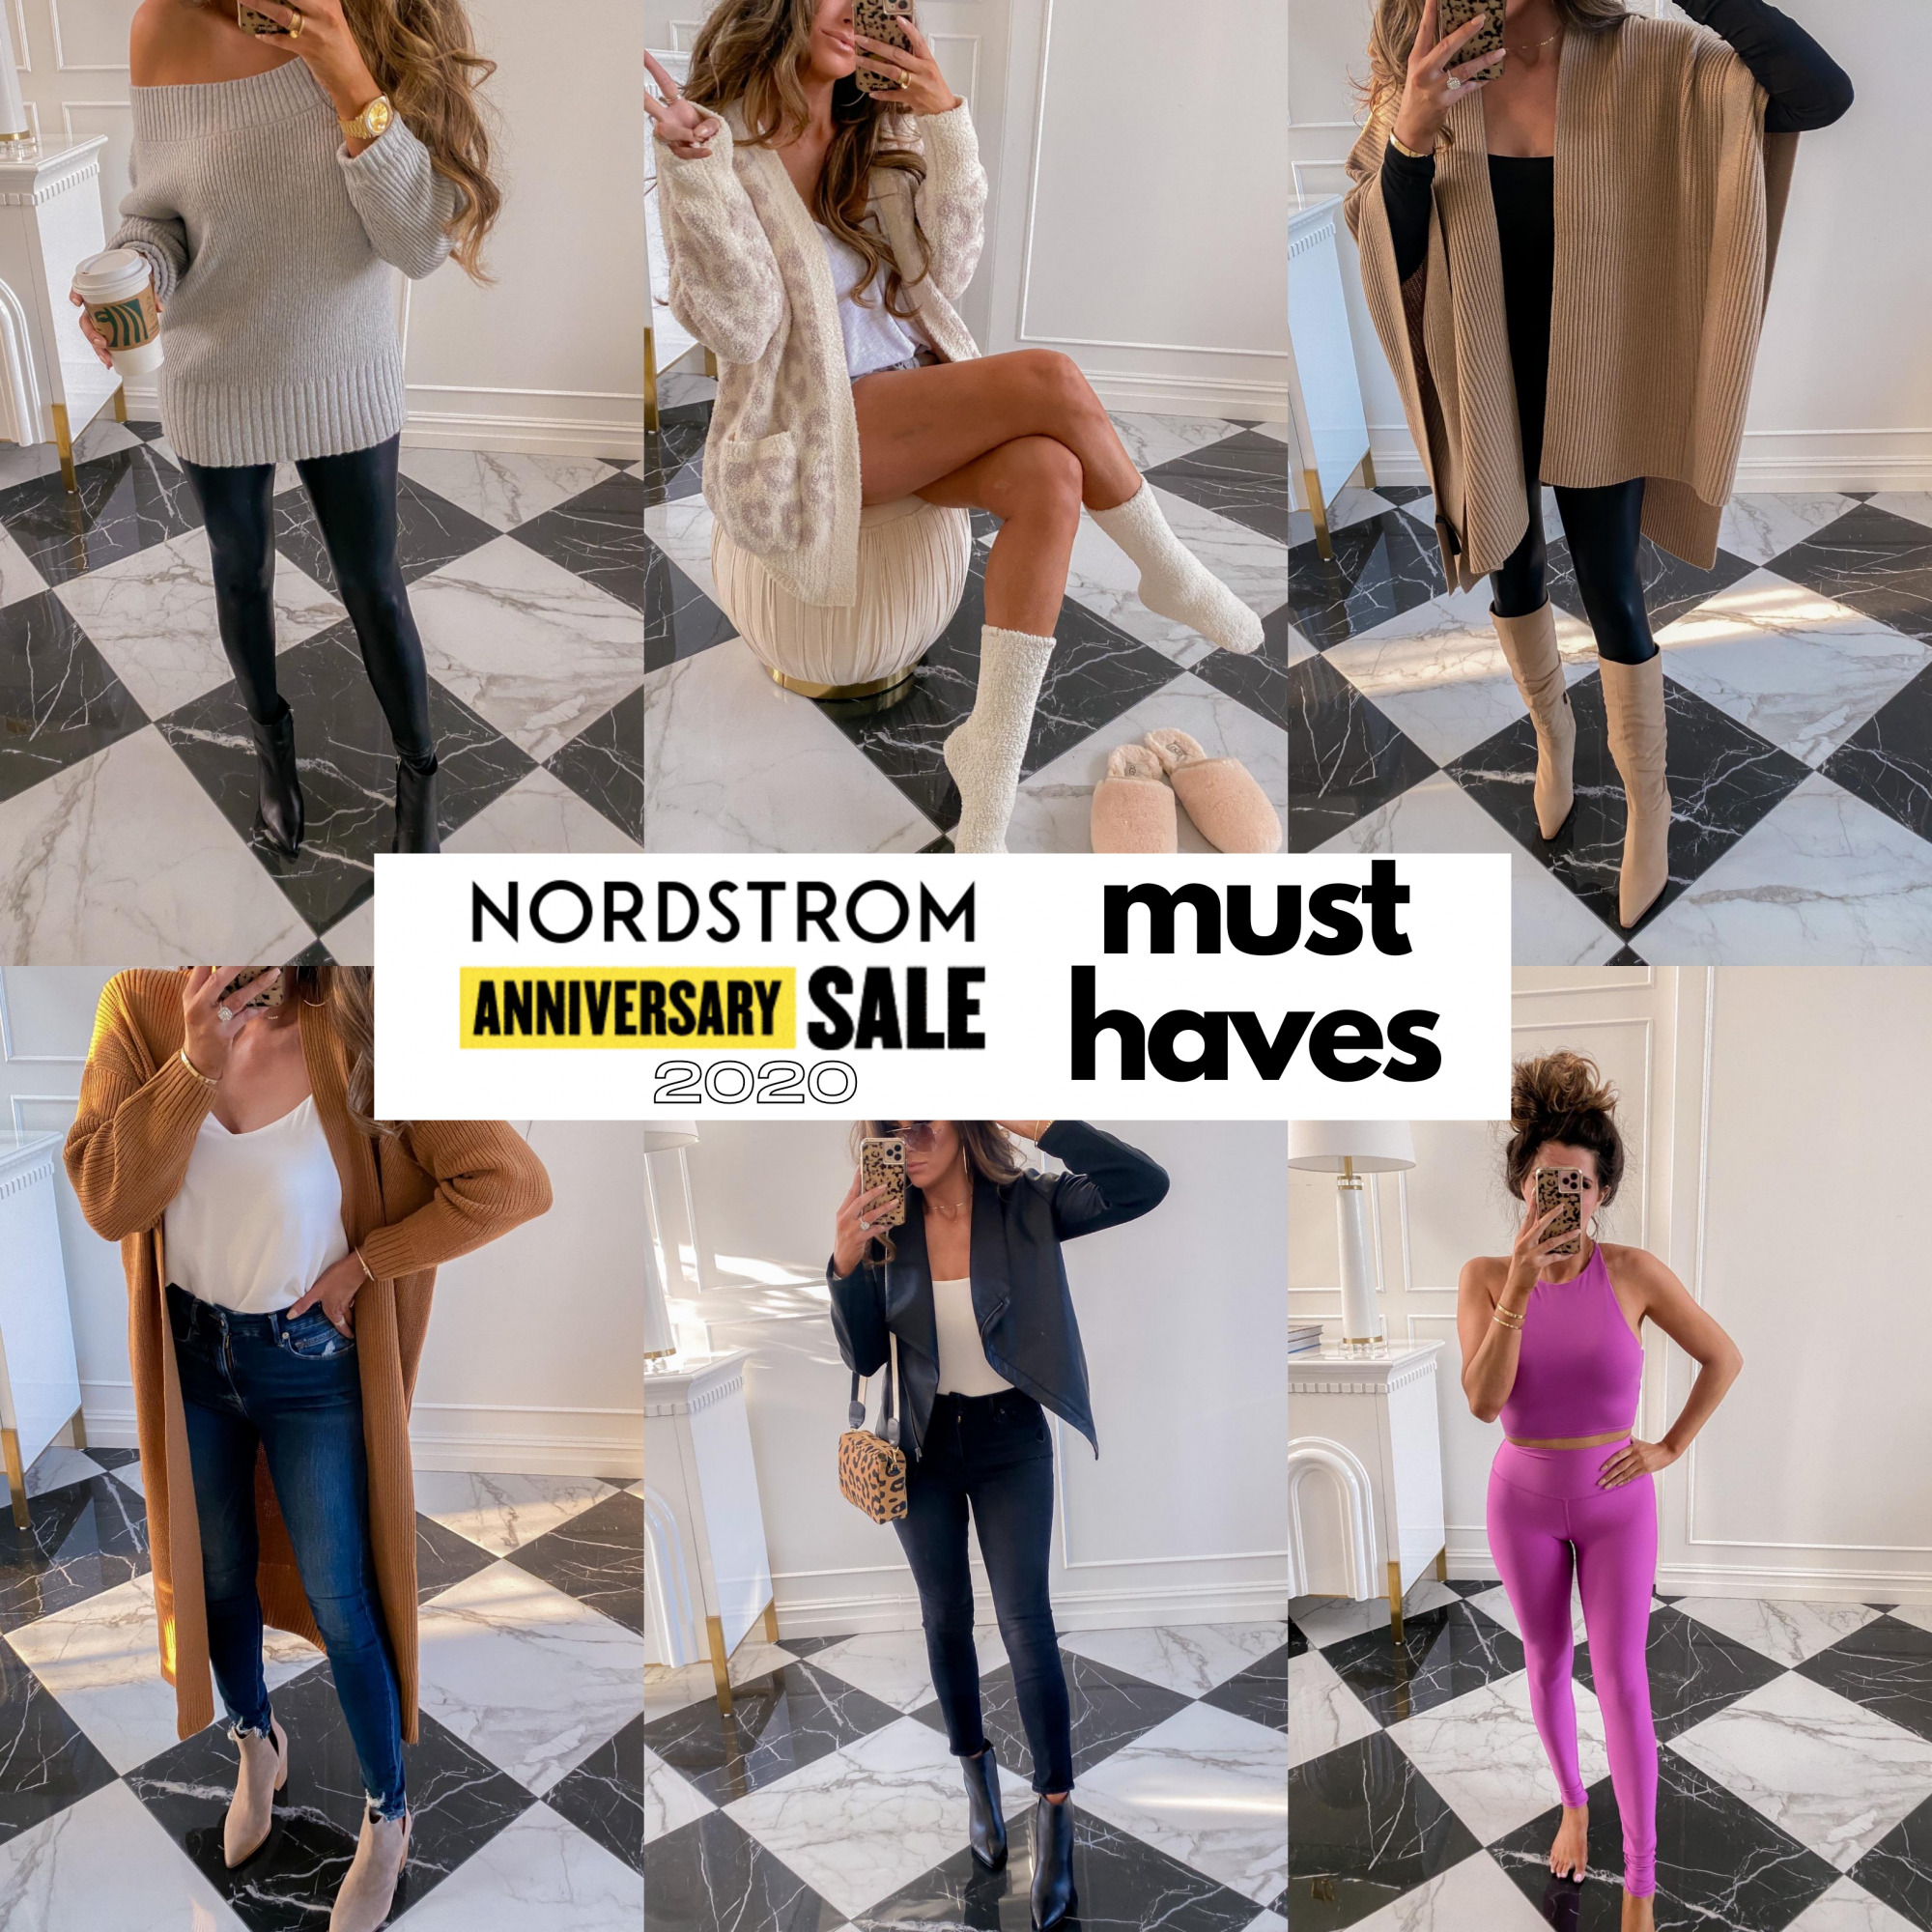 Nordstrom Anniversary Sale 2020 Try On, NSALE 2020 blogger picks, Nordstrom anniversary sale top picks must haves | Nordstrom Anniversary Sale by popular US fashion blog, The Sweetest Thing: collage image of Emily Gemma wearing Nordstrom cardigans, sweaters, jeans, leggings and boots.